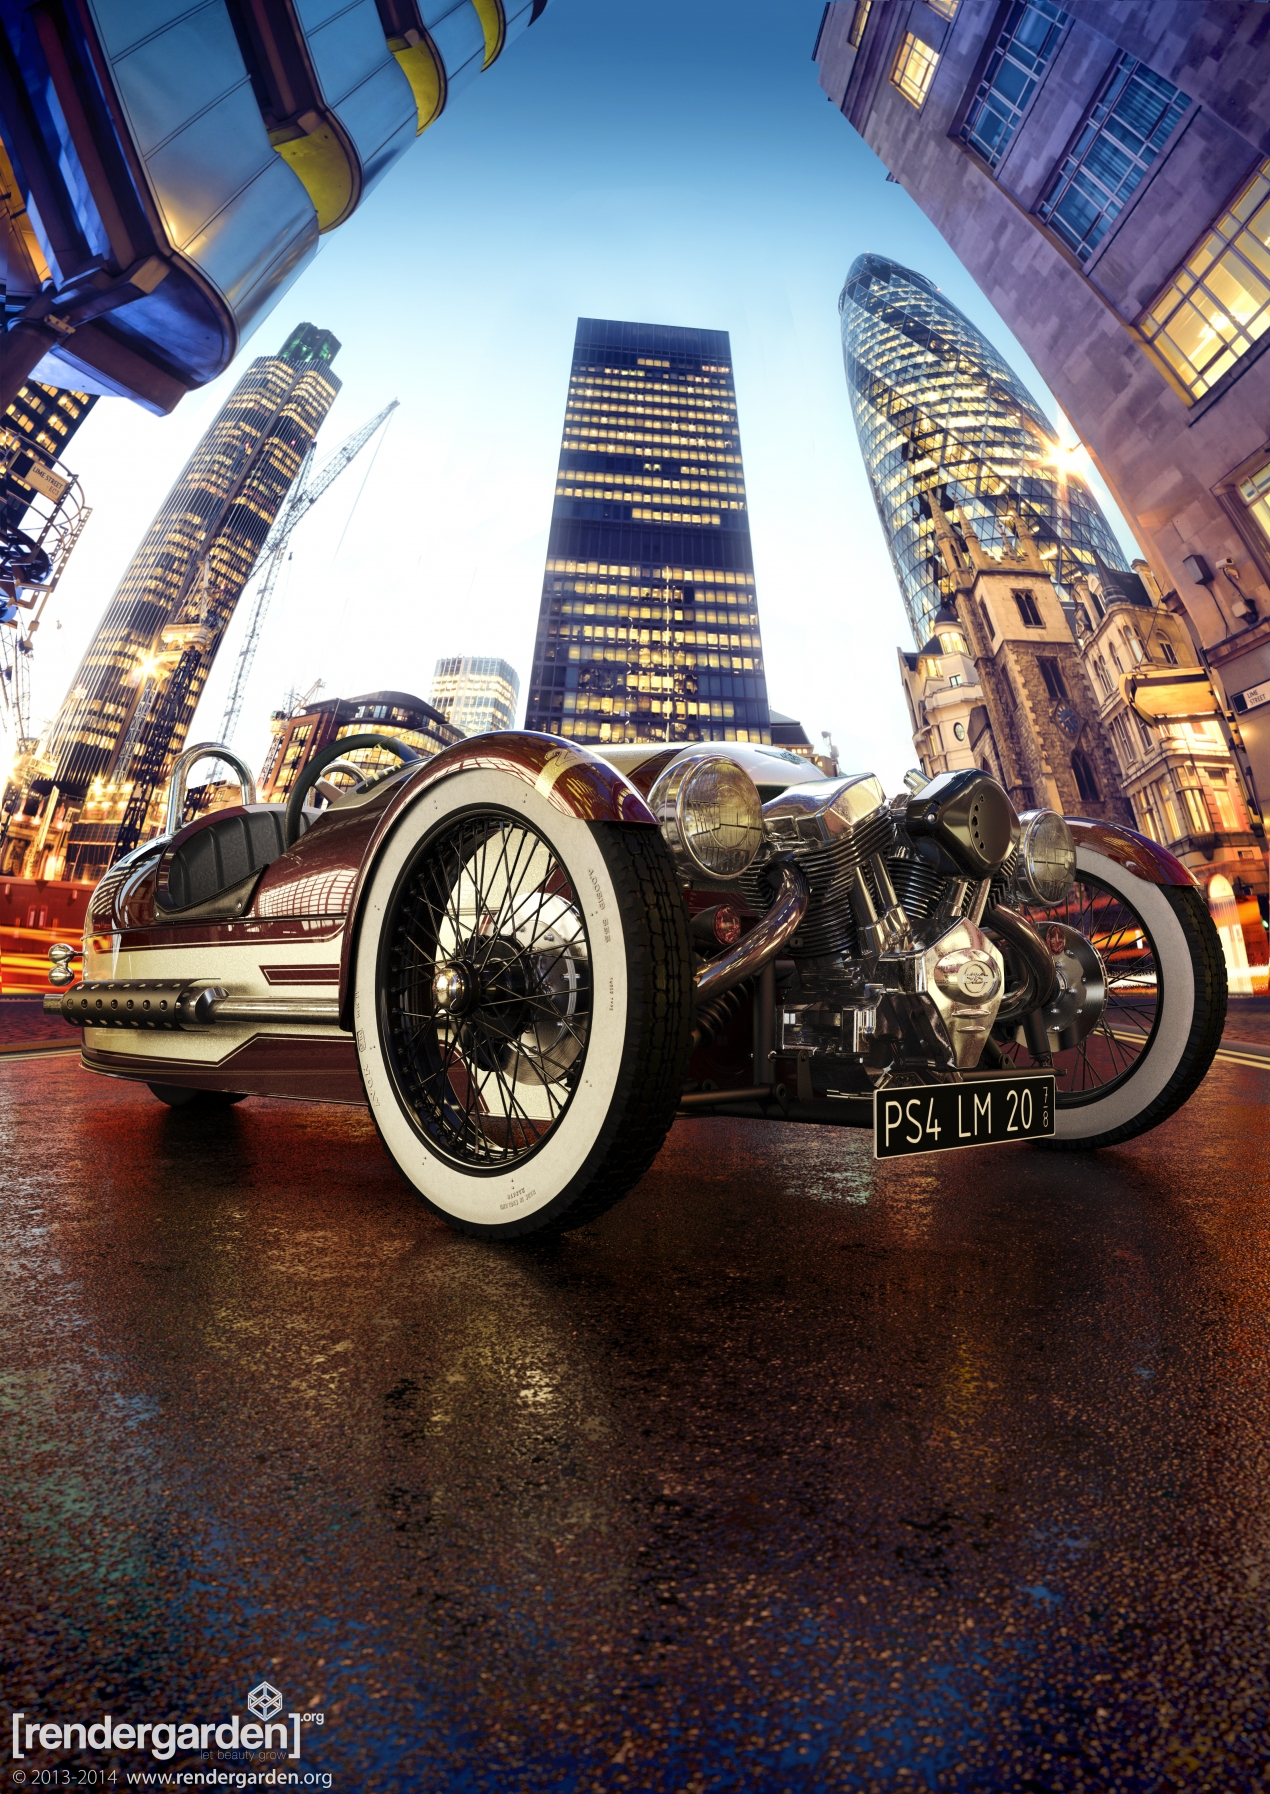 Morgan 3 Wheeler - Visualization for Morgan Motors Company, Autodesk and HP Competition